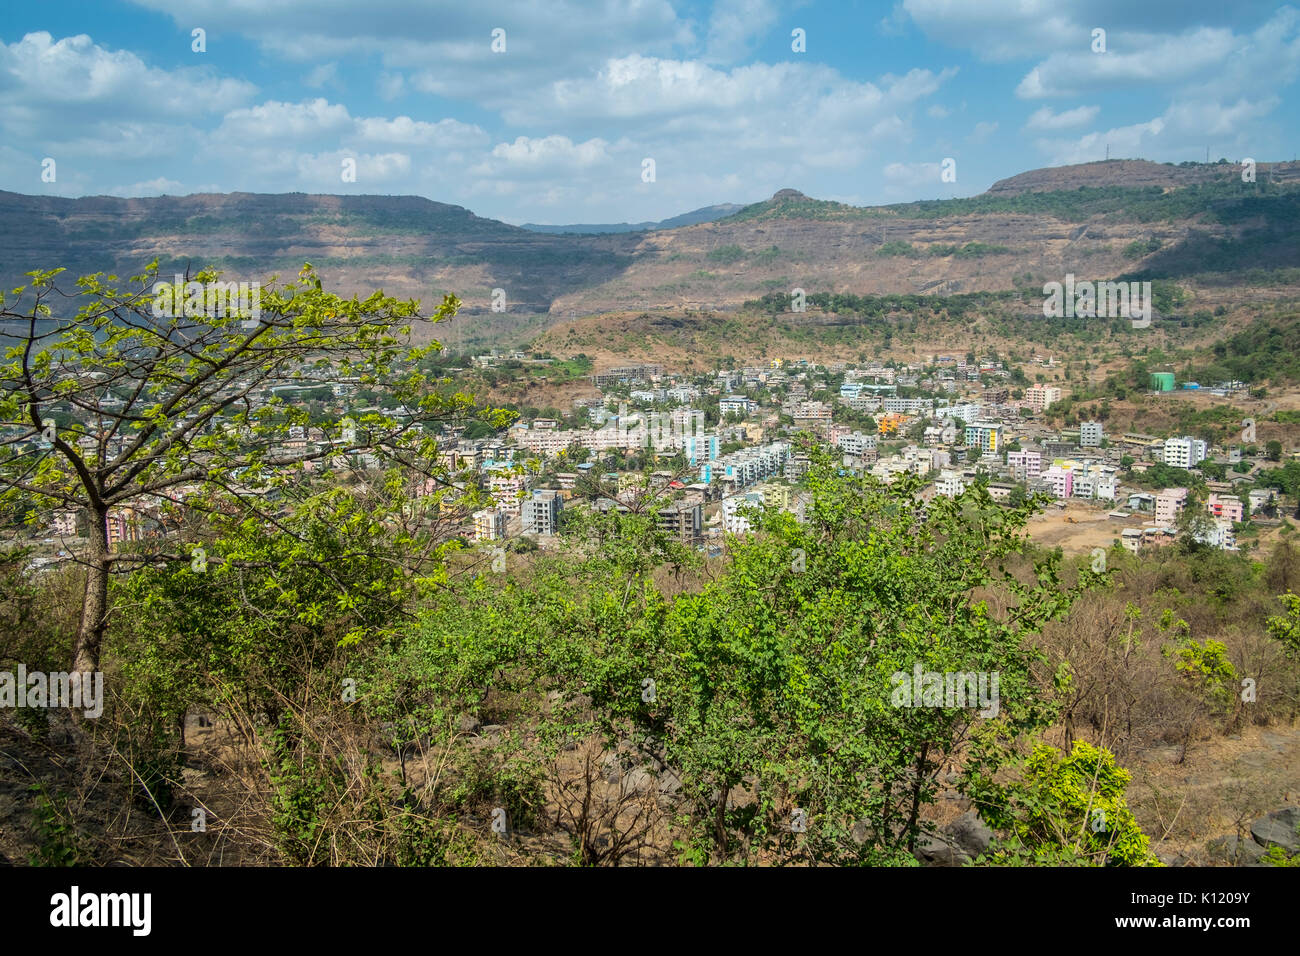 A shot of the town of Talegoan and how soon iy s spreading to envelope the once lush forests and farmlands. - Stock Image